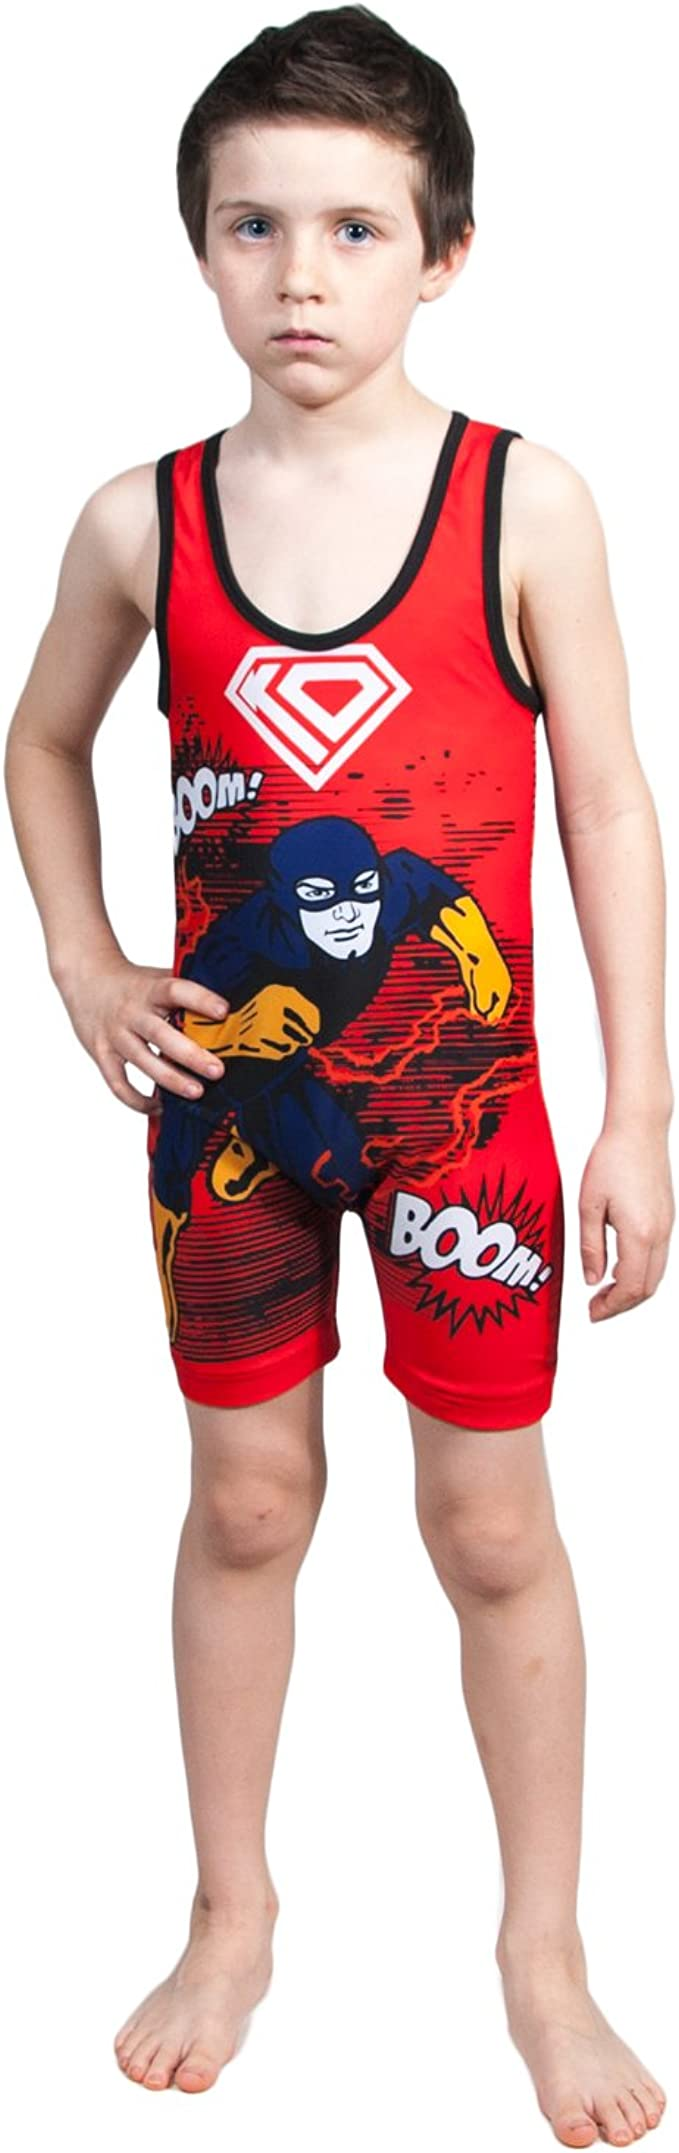 Knee Pad Covers and Kickpad Covers Set Pro Wrestling Gear Singlet Made To Order Wrestling Singlet Men\u2019s Singlet  Plain Wrestling Gear